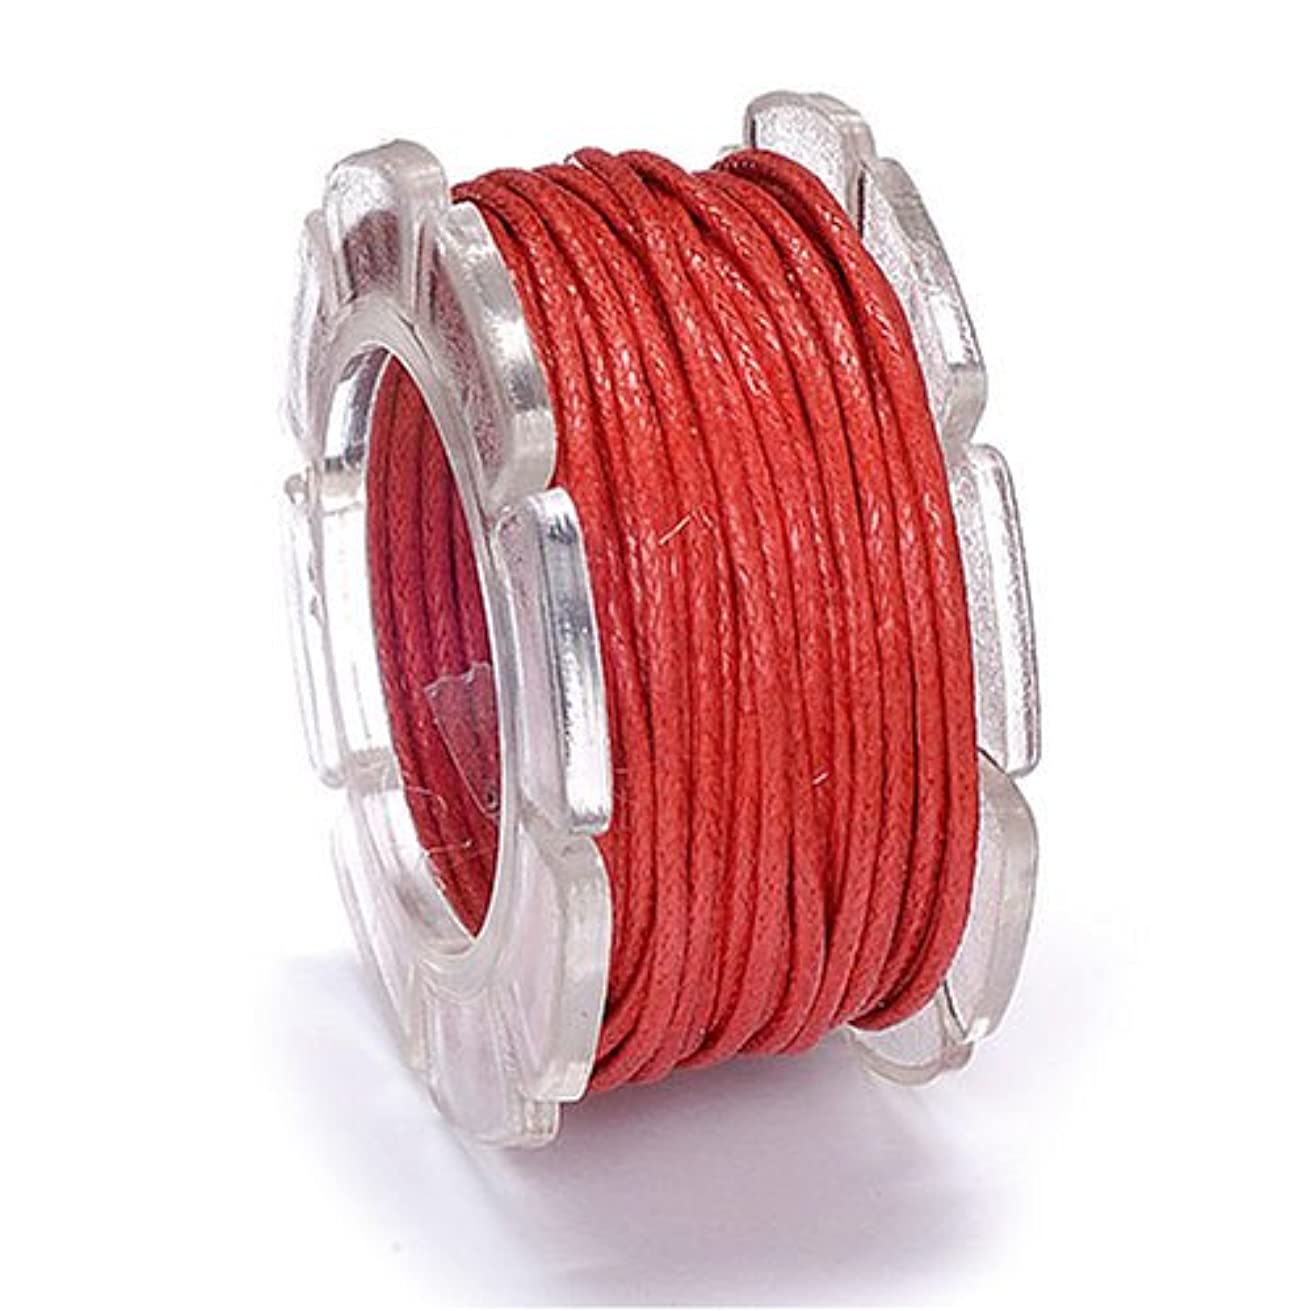 KnorrPrandell Wax Cord red 1mmx5m